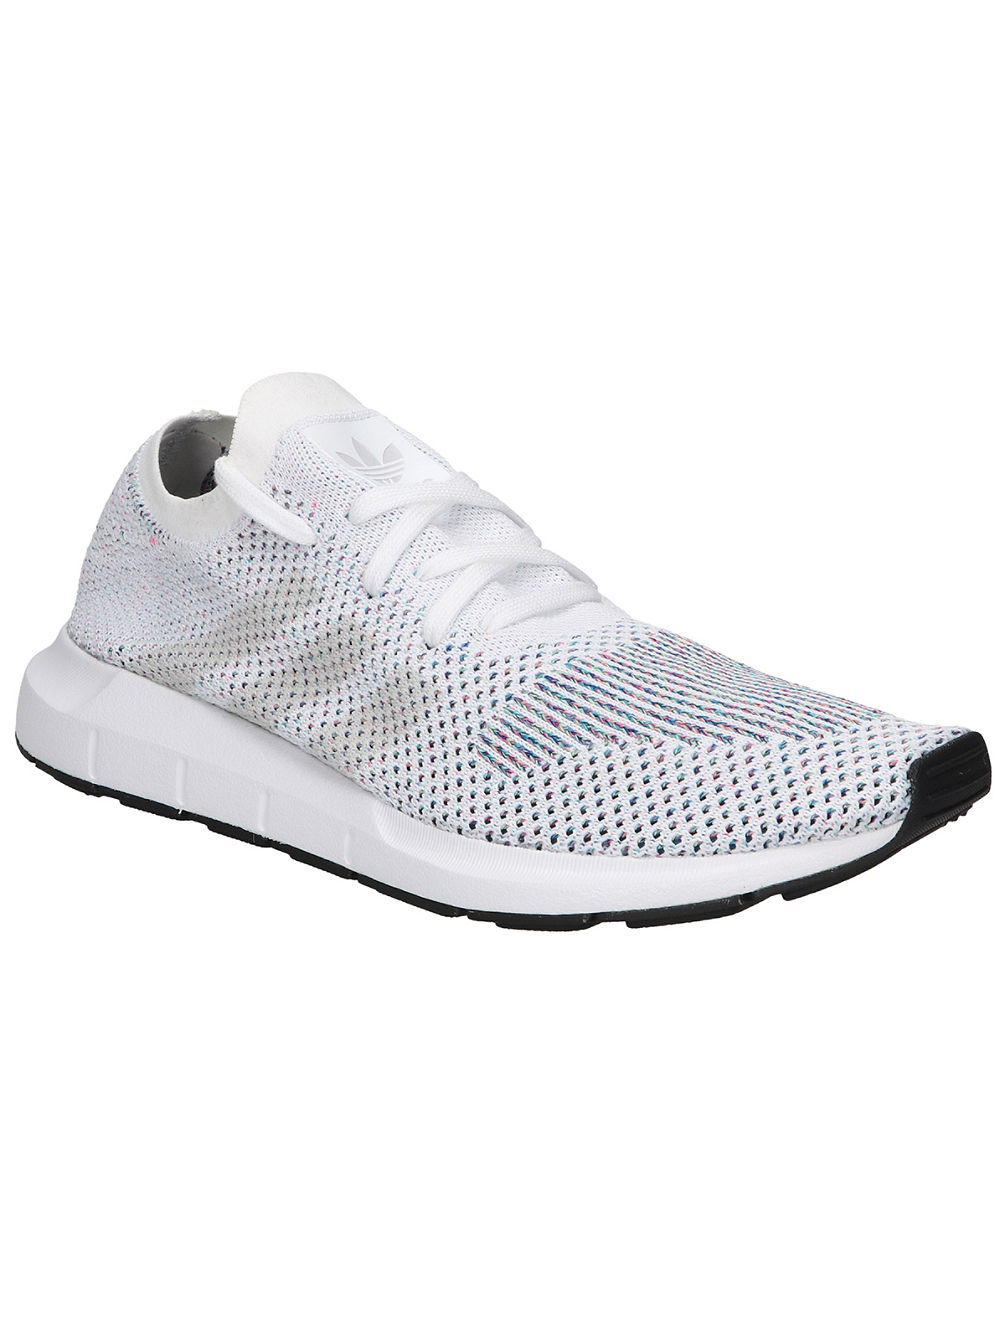 3a39a5d0fd41 Buy adidas Originals Swift Run Primeknit Sneakers online at blue ...